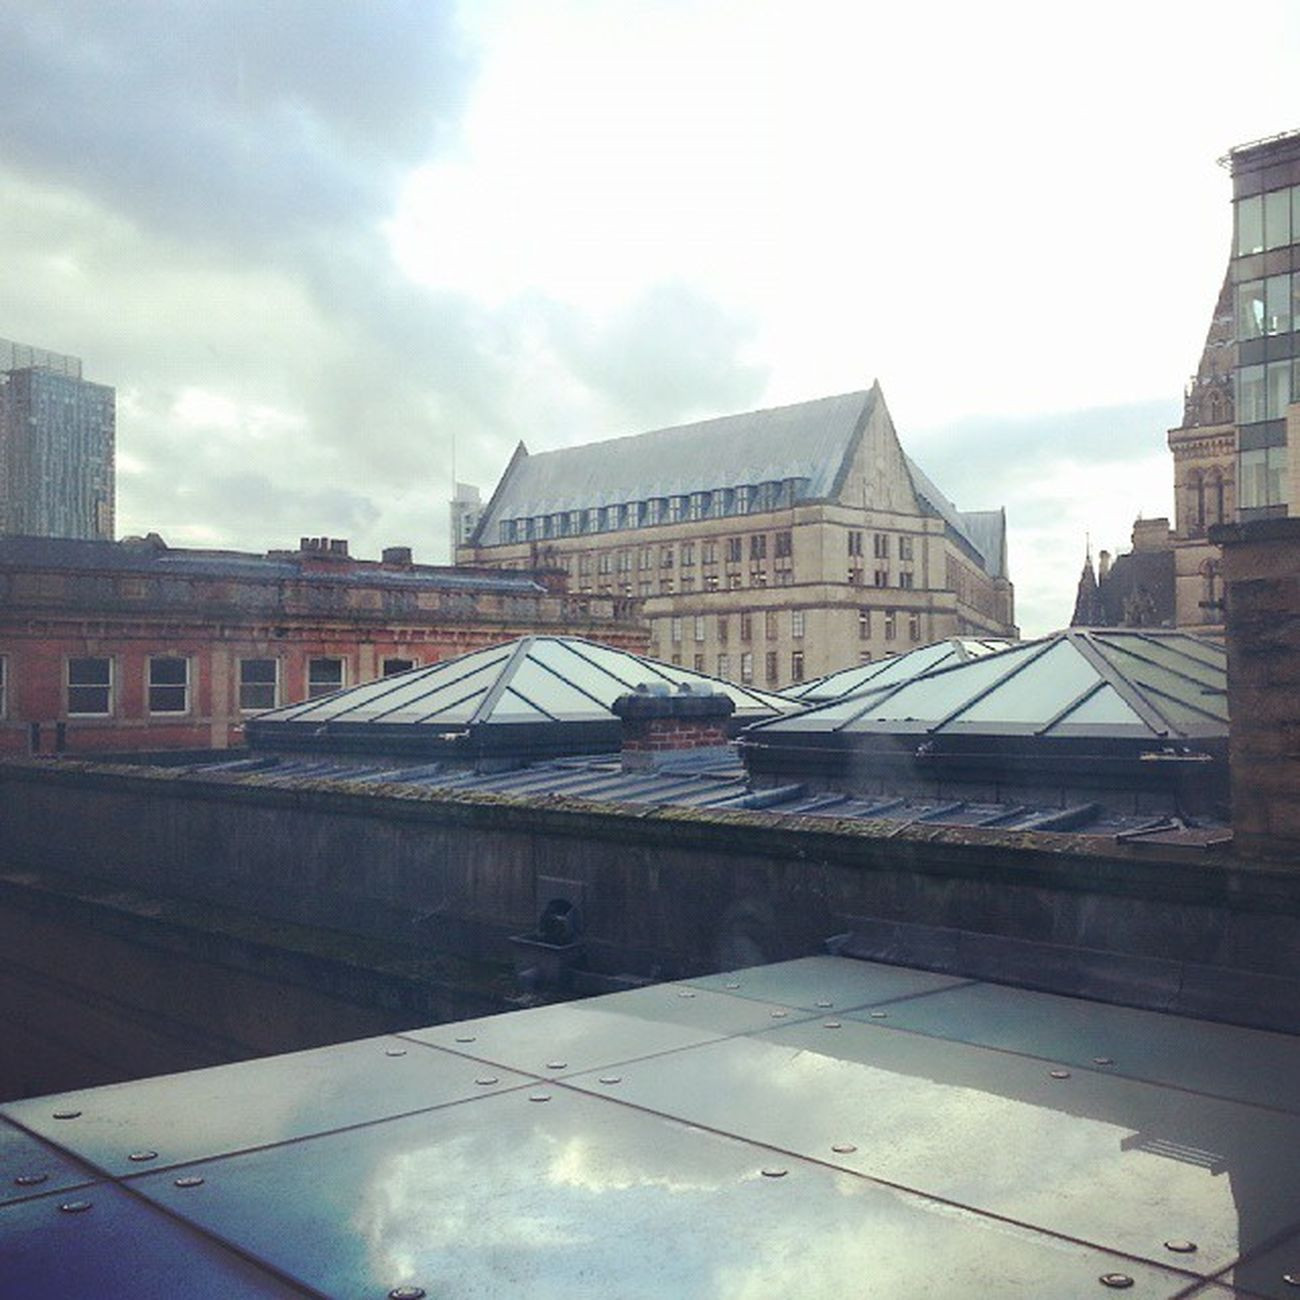 Rooftop Rooftops Manchester Manchesterartgallery Art Artgallery View Reflection Sky Cloudporn Cloudy Afternoon Redbricks Igers Igtravel Mytravelgram Dejavu Balcony Glass Urban Architecture Architectureporn England